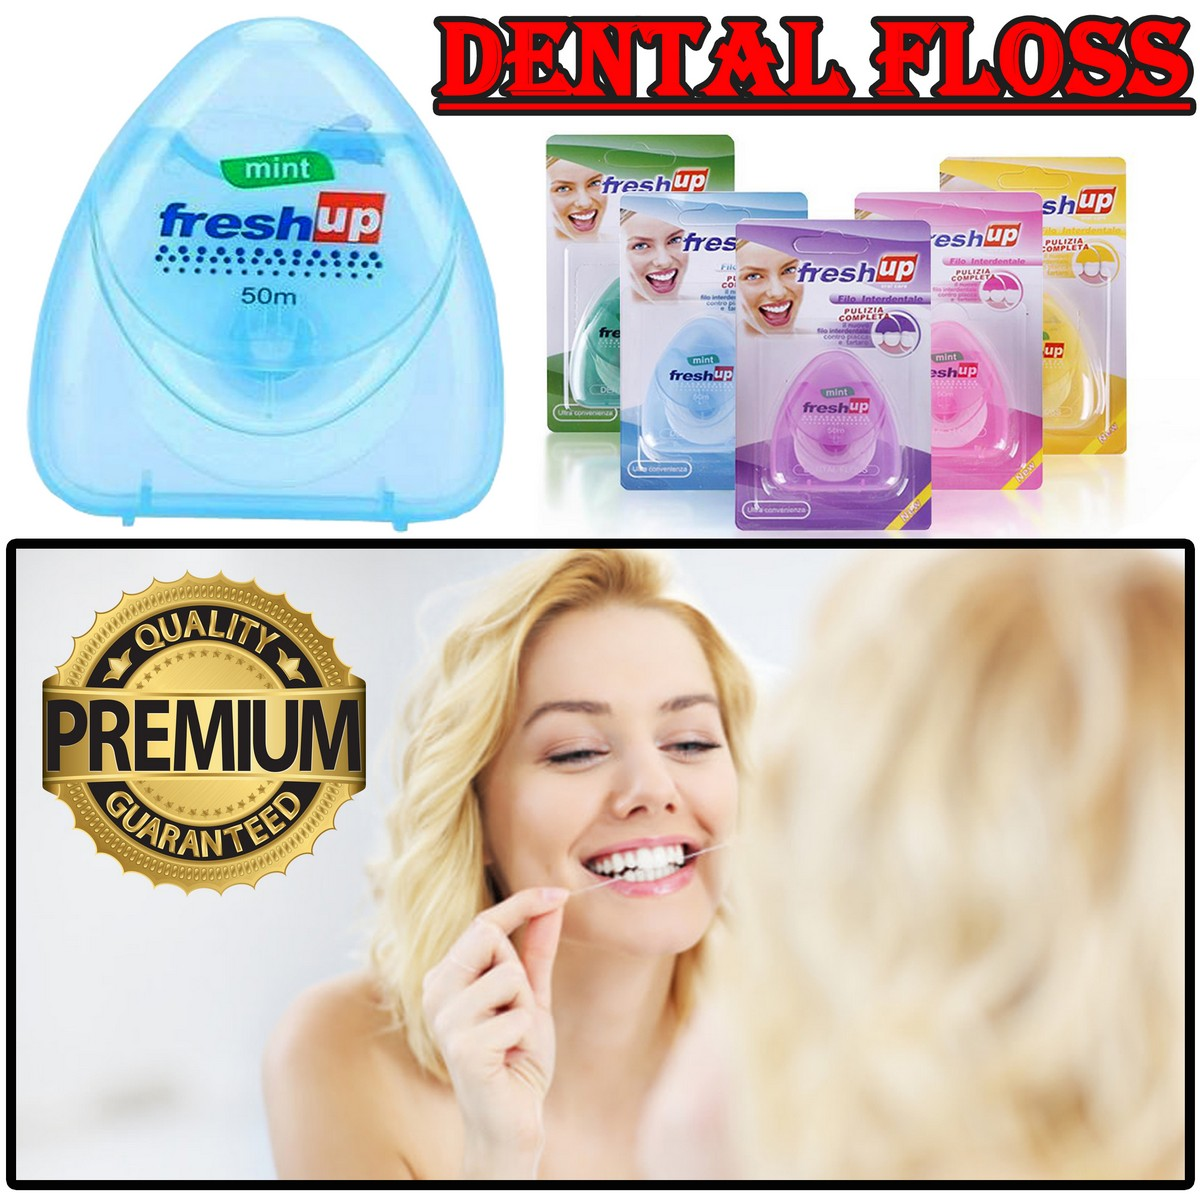 Freshup Dental Floss Micro Wax Peppermint flavor Mint Flavour Flosser Interdental Brush portable oral hygiene care Freshup flat clean teeth wire Flossier 50M Best quality floss wire